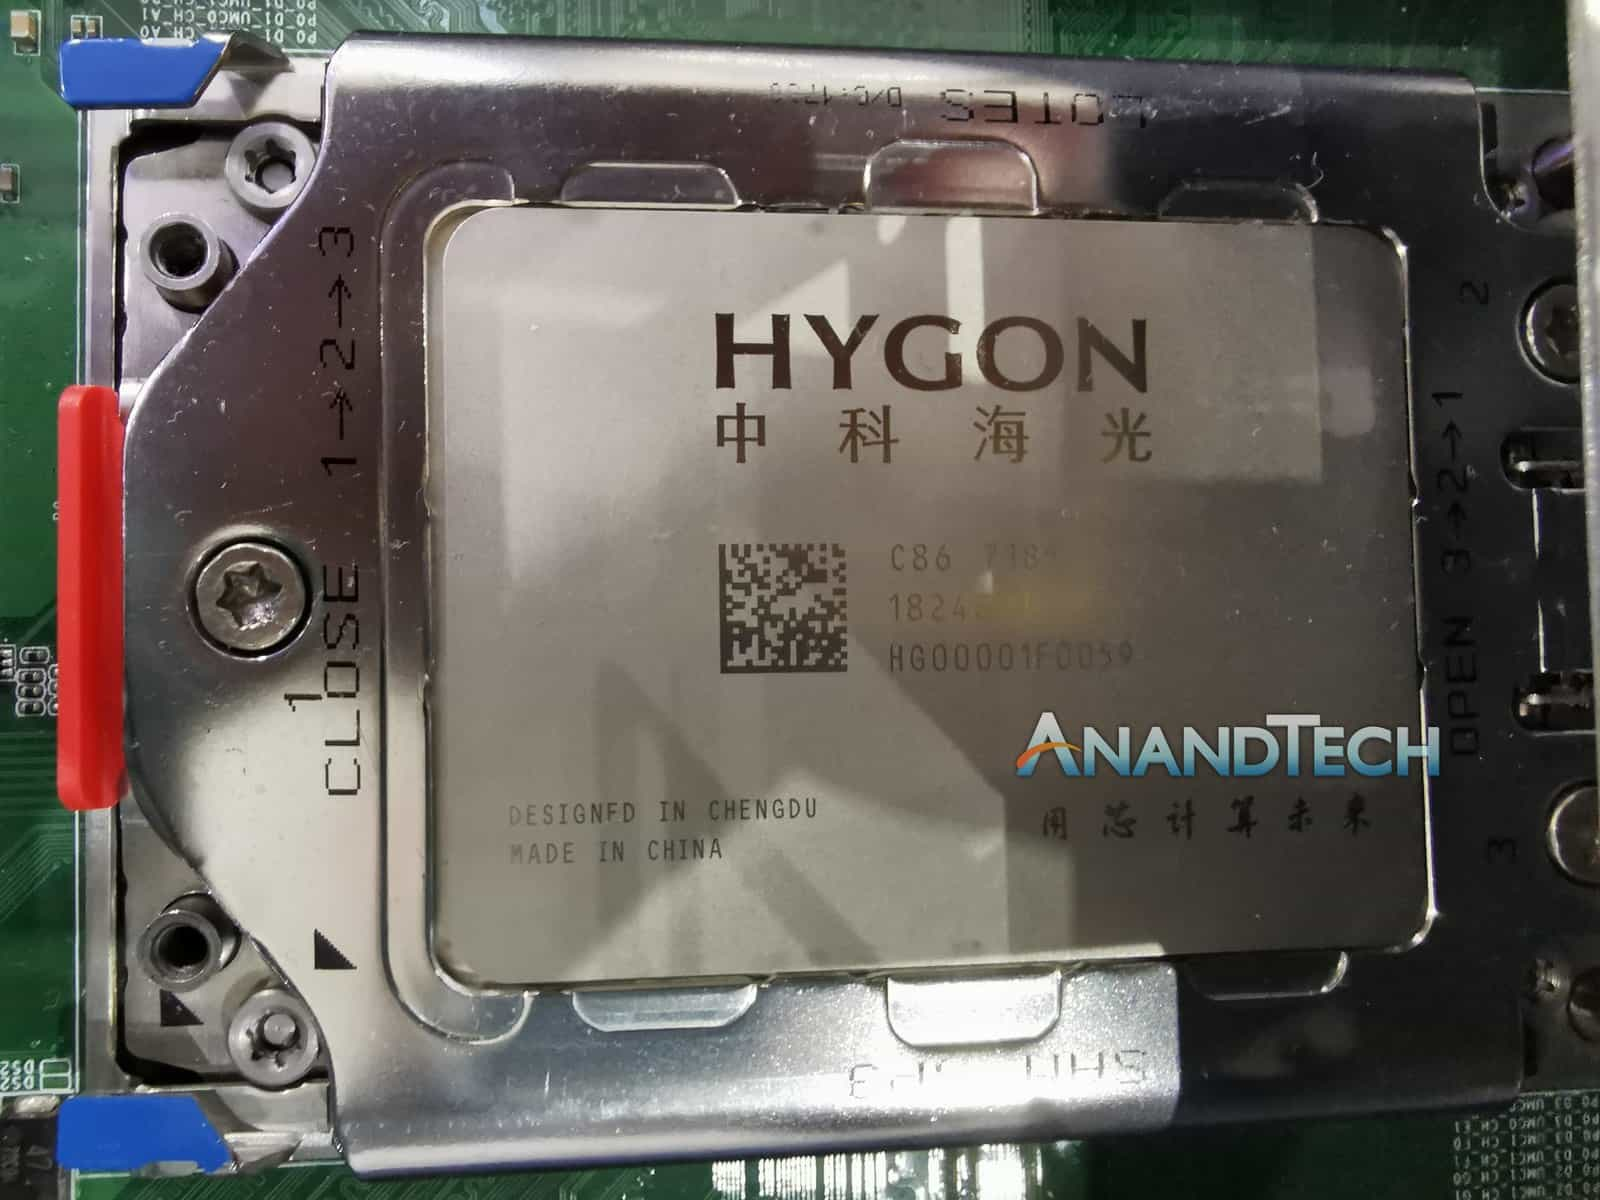 Hygon Dhyana AnandTech